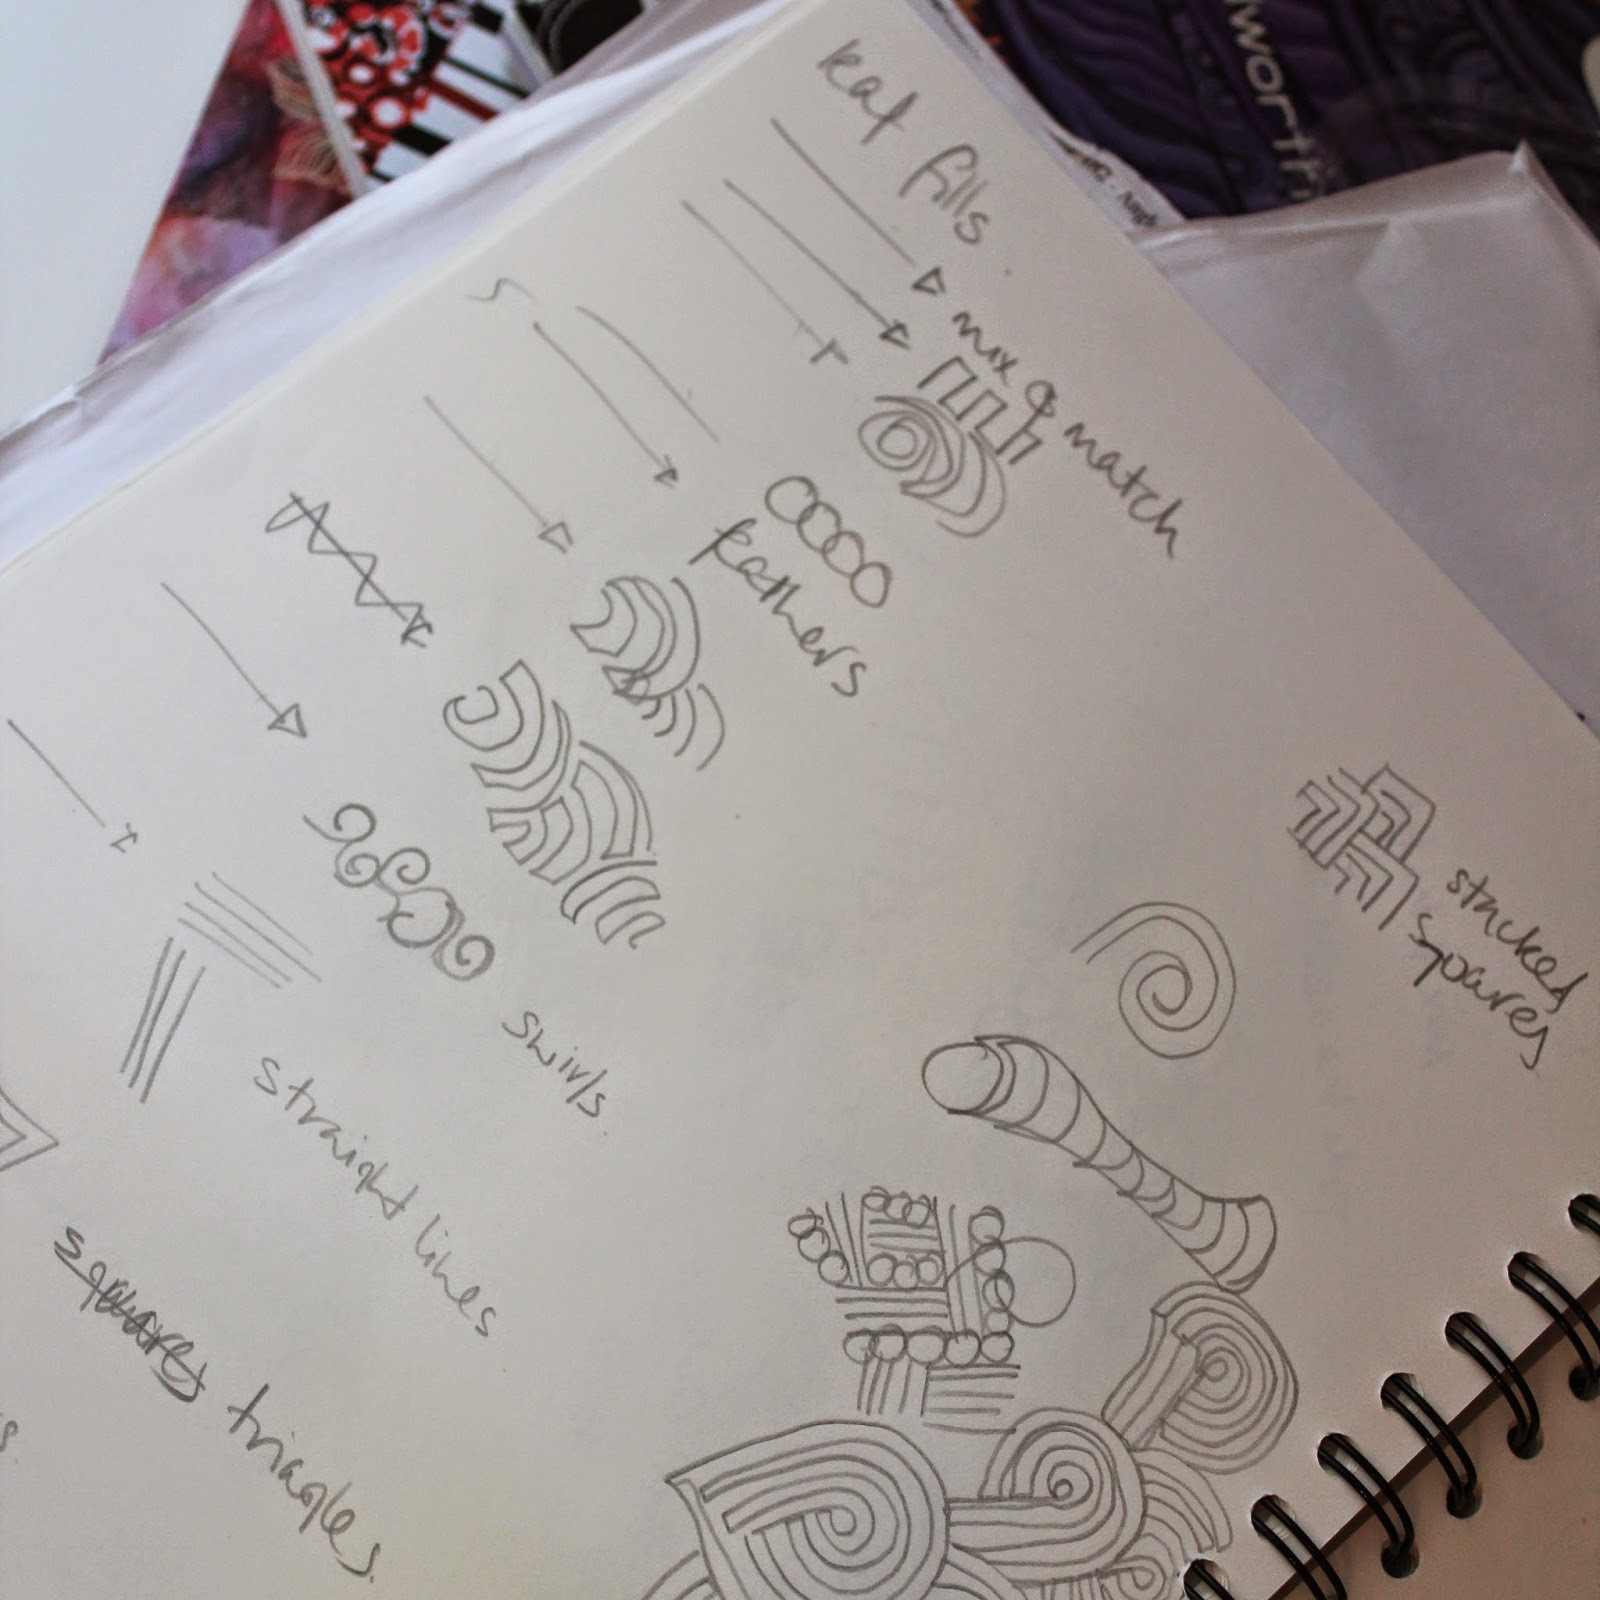 Scrapbook ideas writing - Notes For Designs On Bess Beetle Quilt